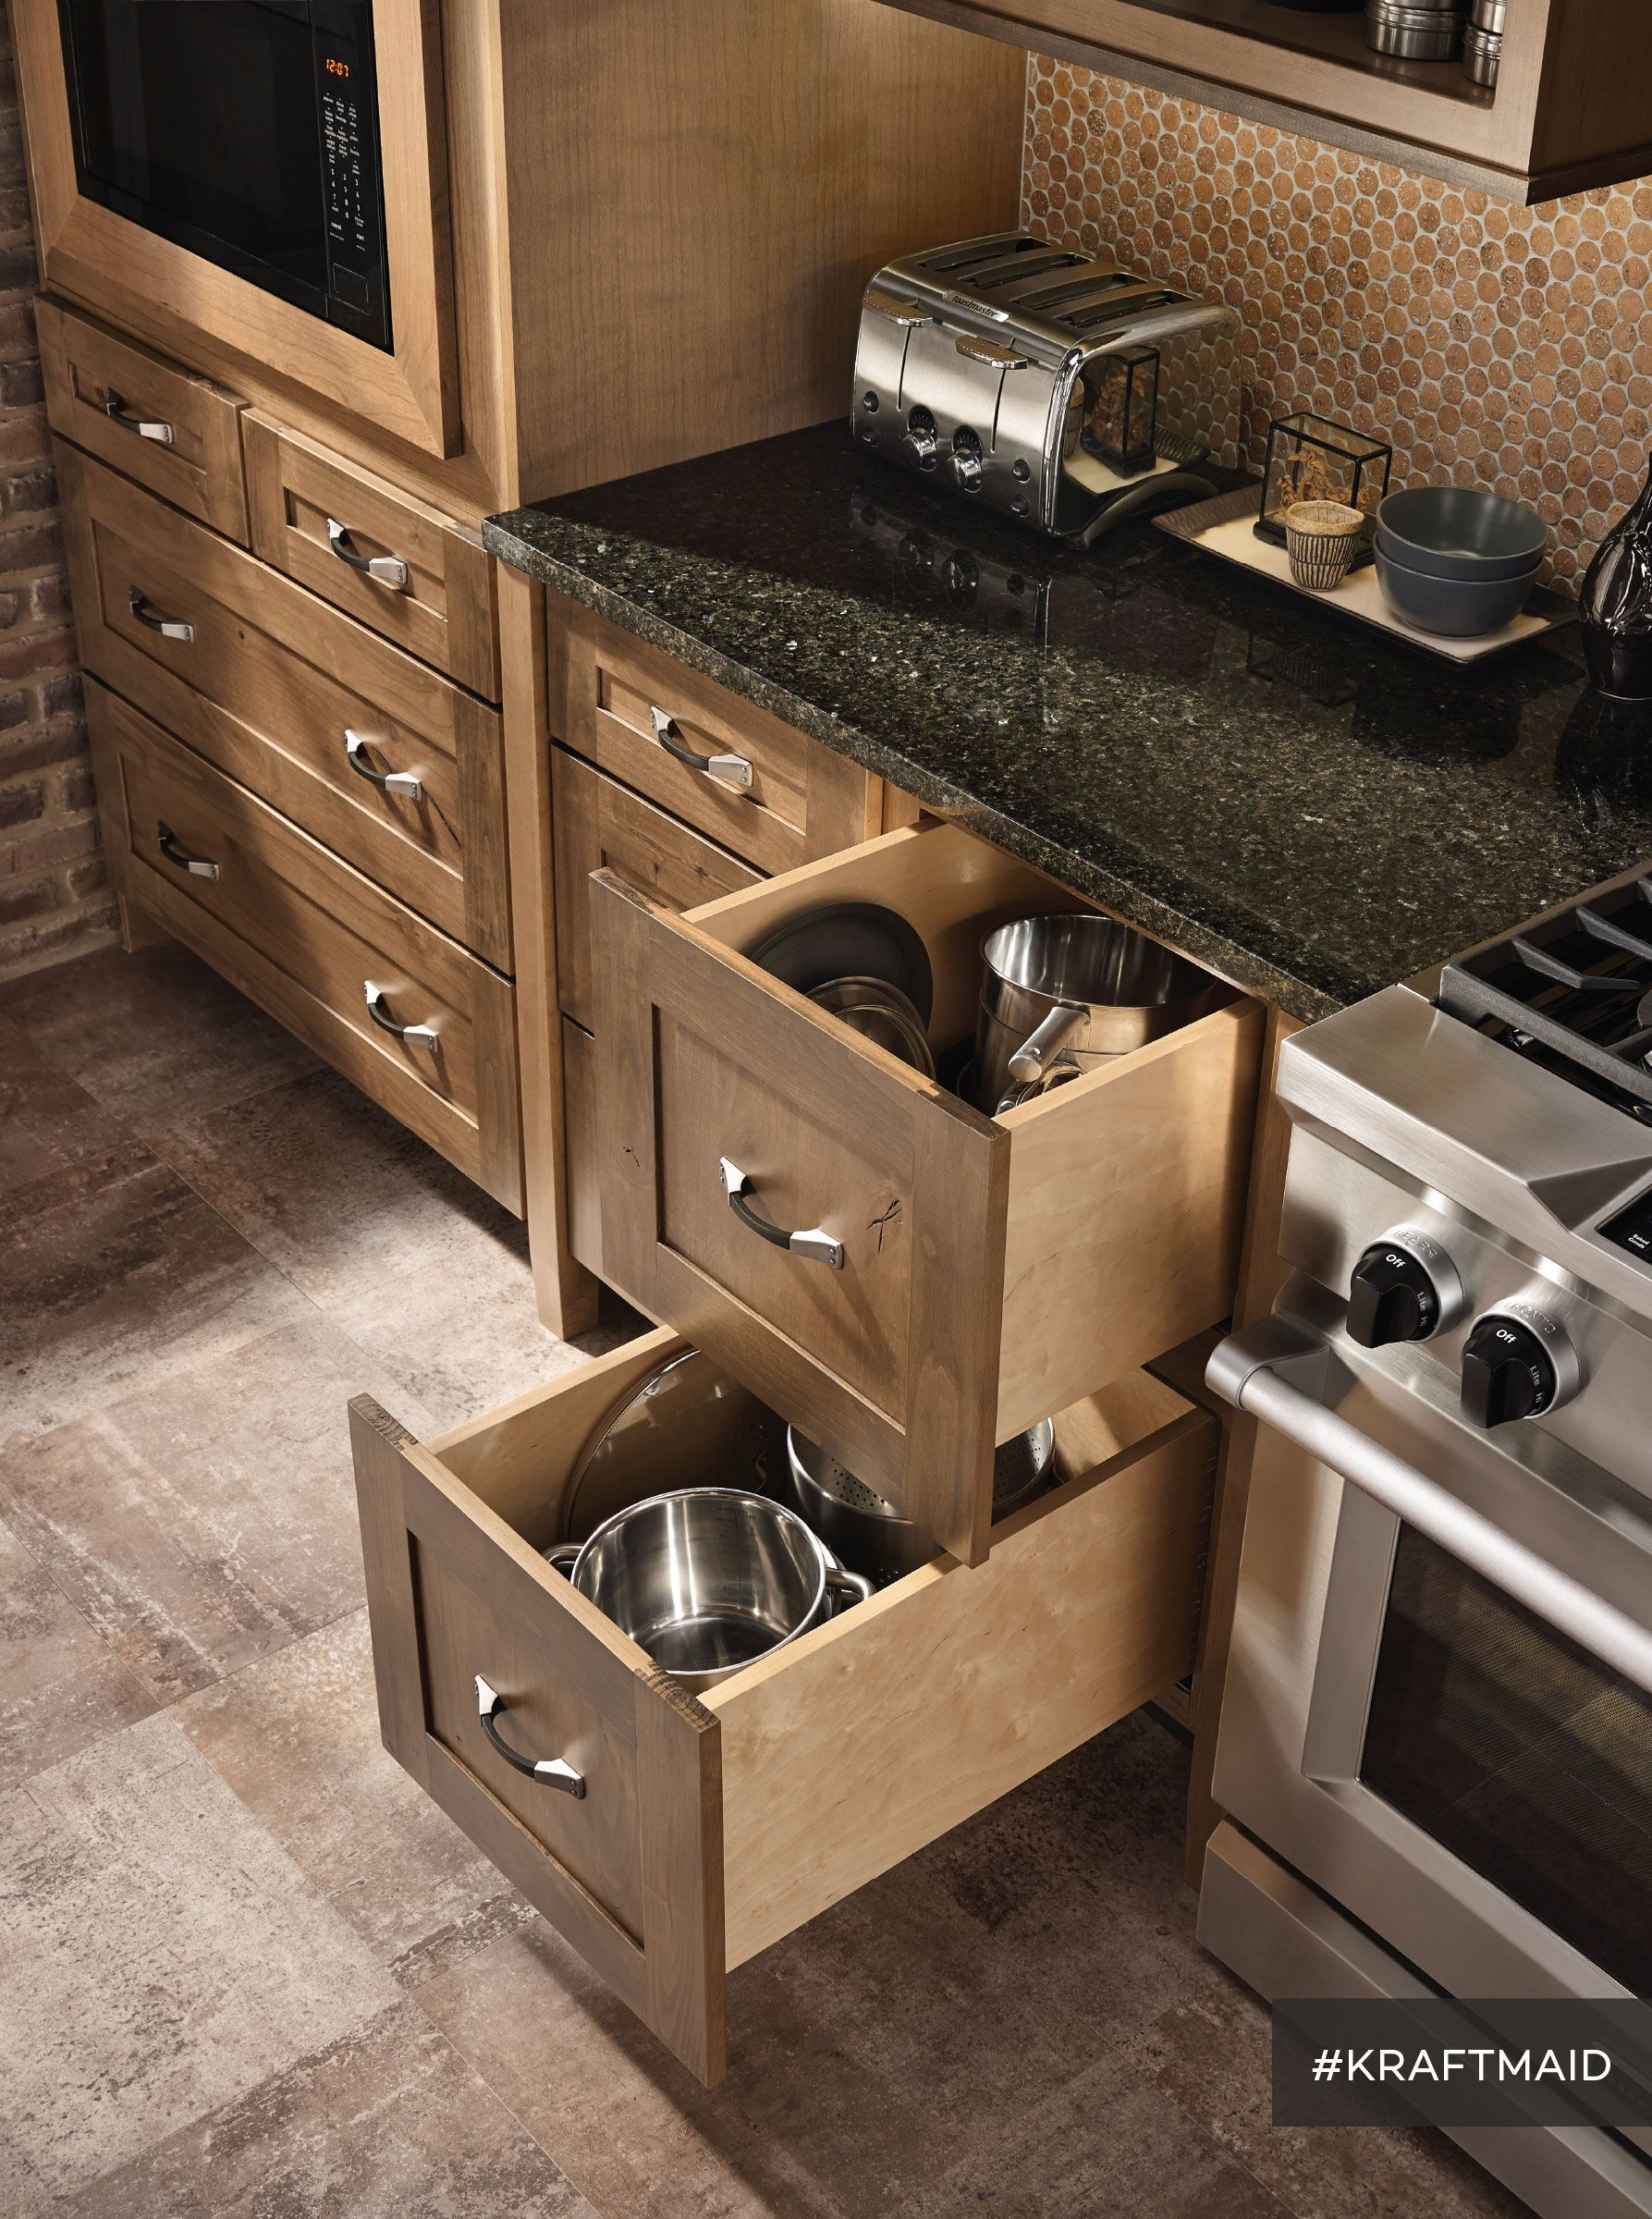 cabinet cabinets kitchen front the sequence base cozy category primer drawers methods porch with drawer